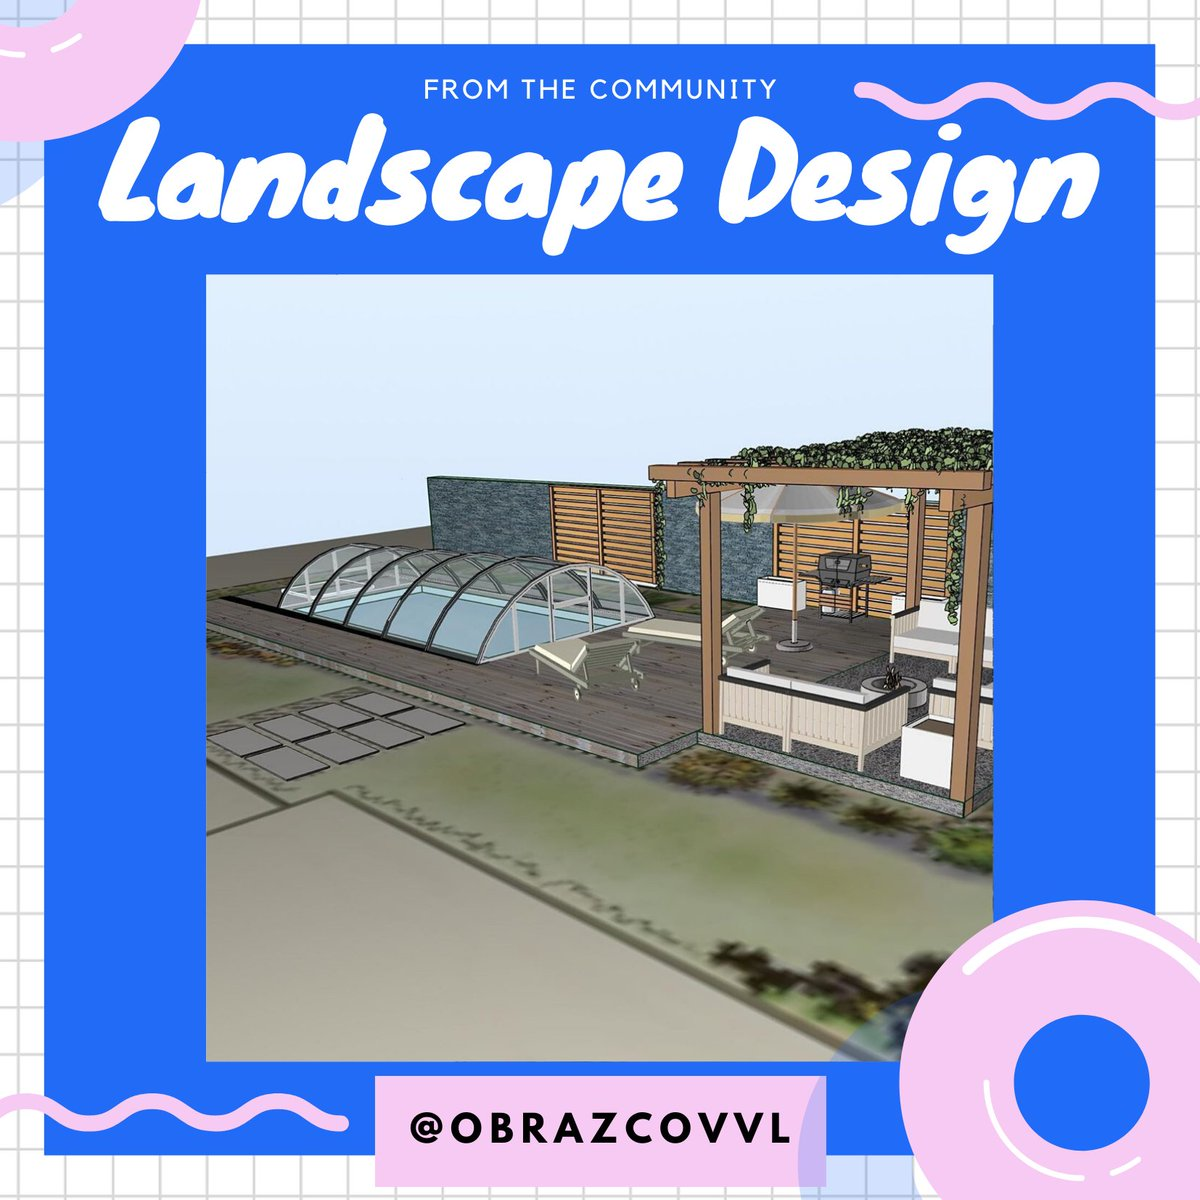 Summer is just around the corner! ☀️ This landscape design with a beautiful pool 🏊 made by Vlad Obrazcov IG: obrazcovvl  using @uMakeXYZ and @MorpholioApps - #cad #3dcad #ipadpro #3ddesign #architecture #landscapedesign